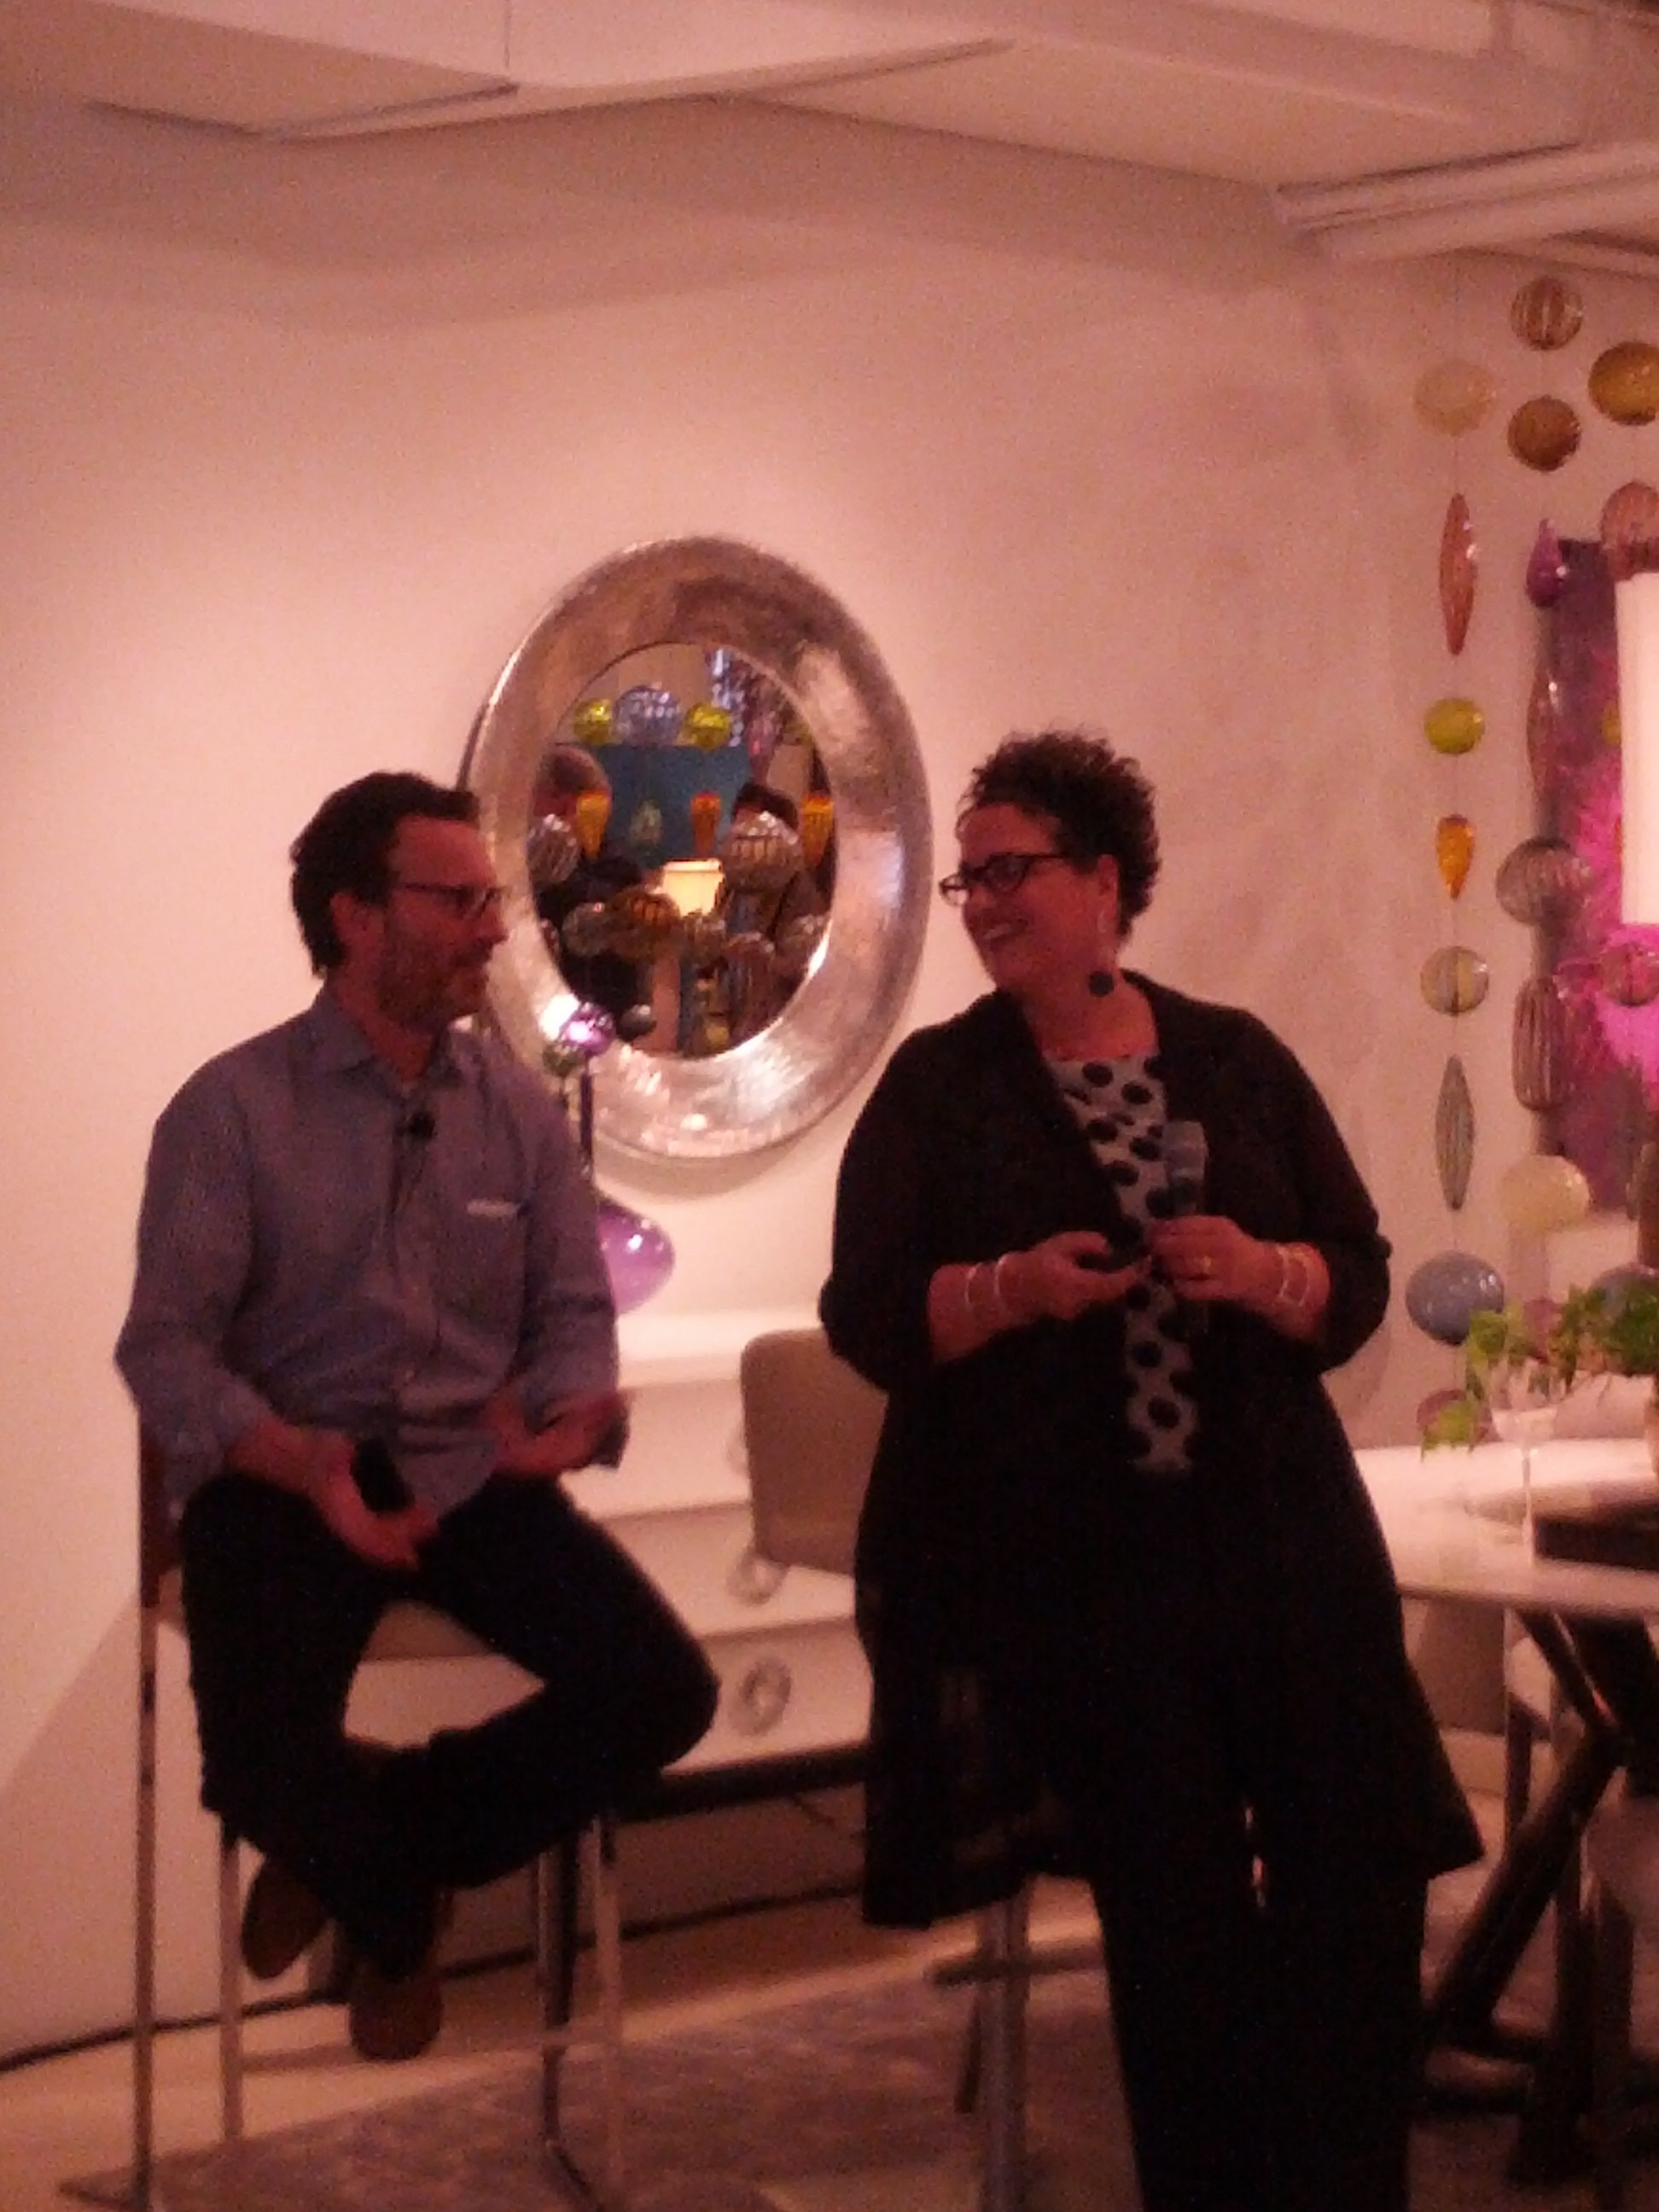 Check in at 200 lex with cindy alllen from interior design